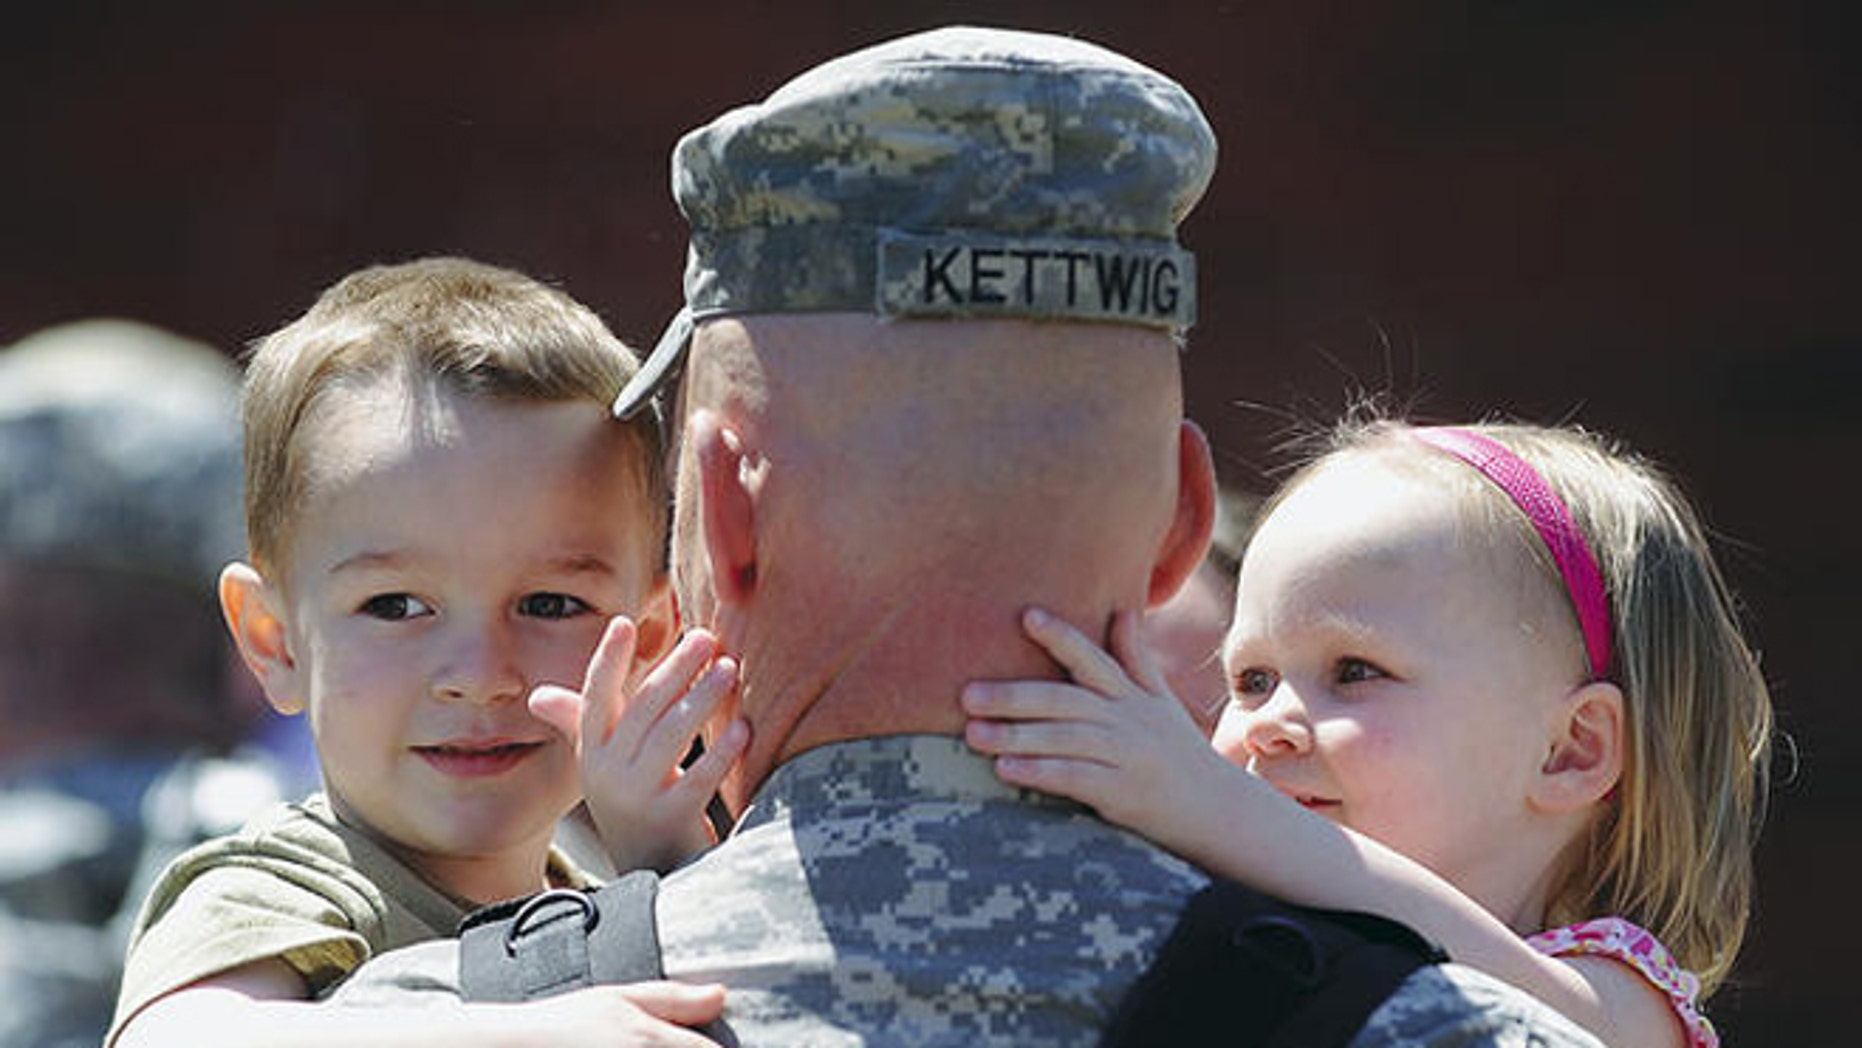 2011: Maj. Jason Kettwig of Milbank, S.D., greeted his children at a Sioux Falls, S.D., homecoming on May 3.  (Elisha Page/Argus Leader/AP)